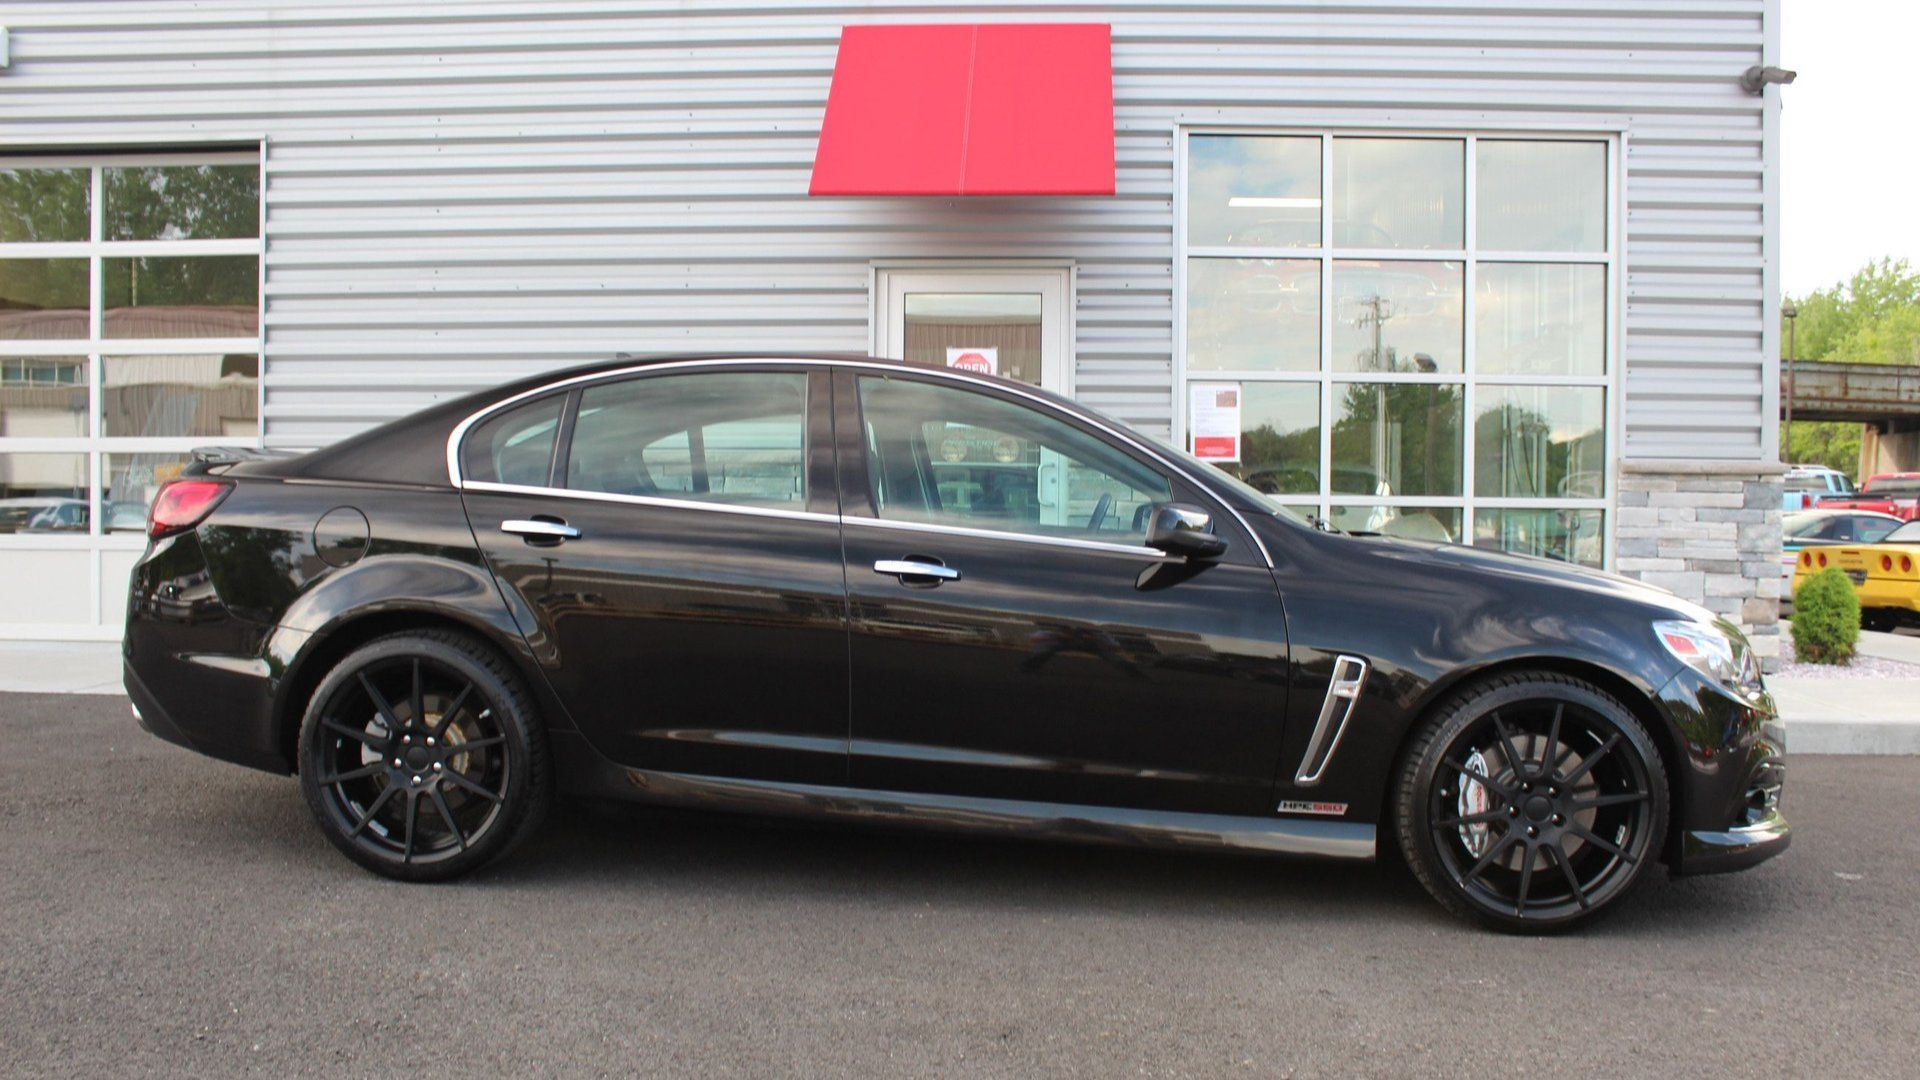 Spank Mustangs With This 2014 Chevy SS Hennessey HPE550